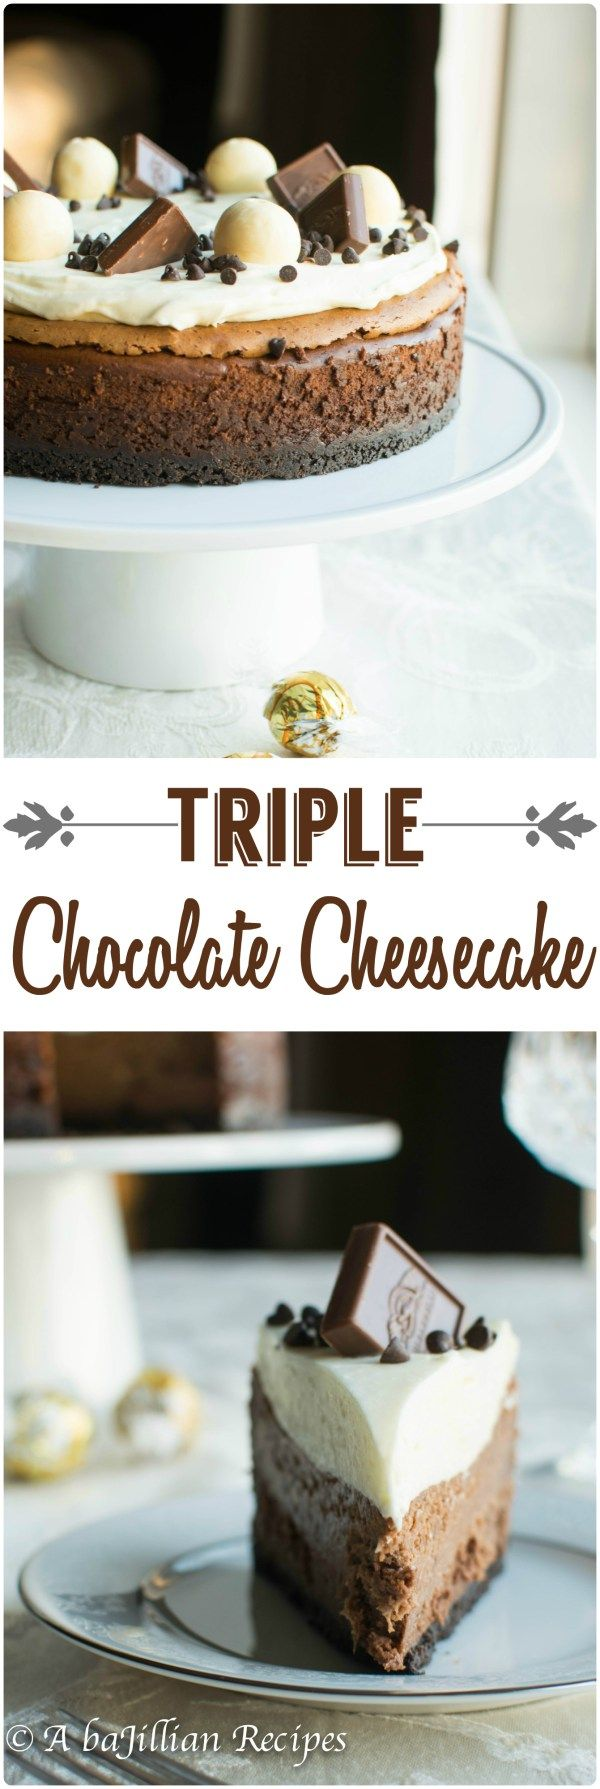 Triple Chocolate Cheesecake1